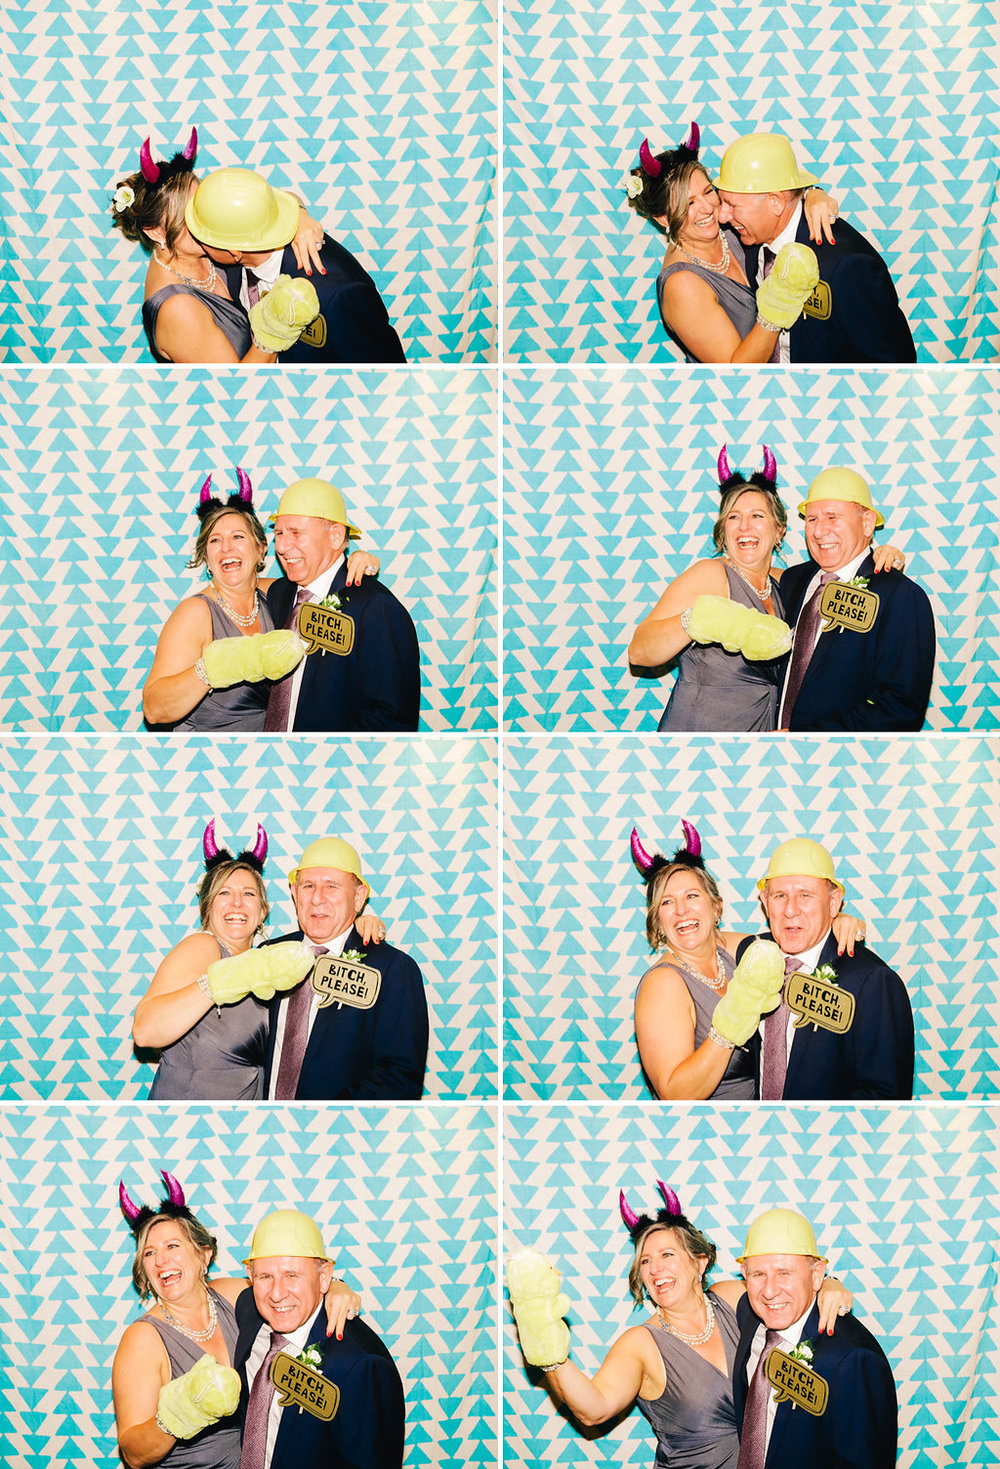 photobooth-002.jpg